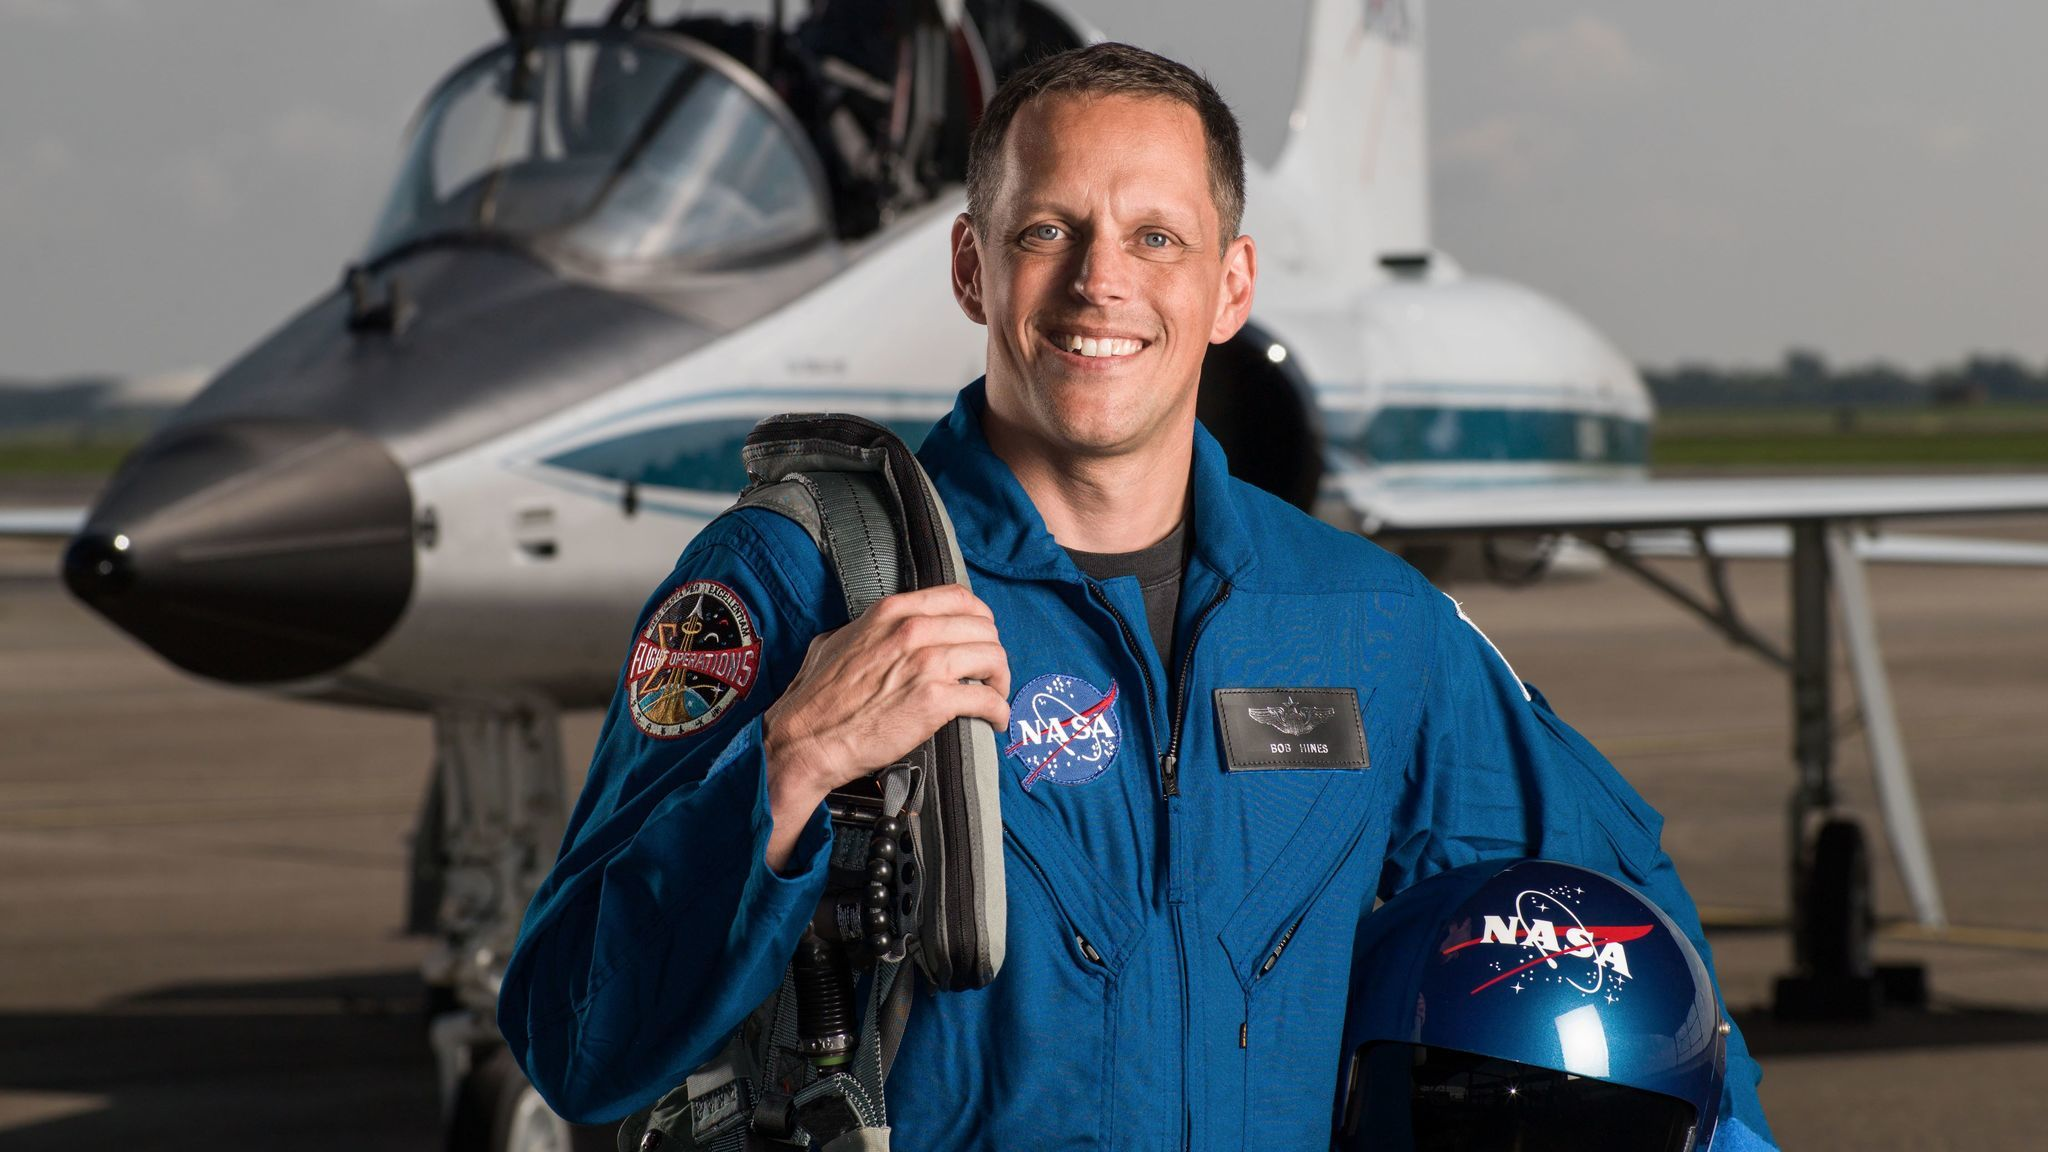 Astronaut Candidate Bob Hines